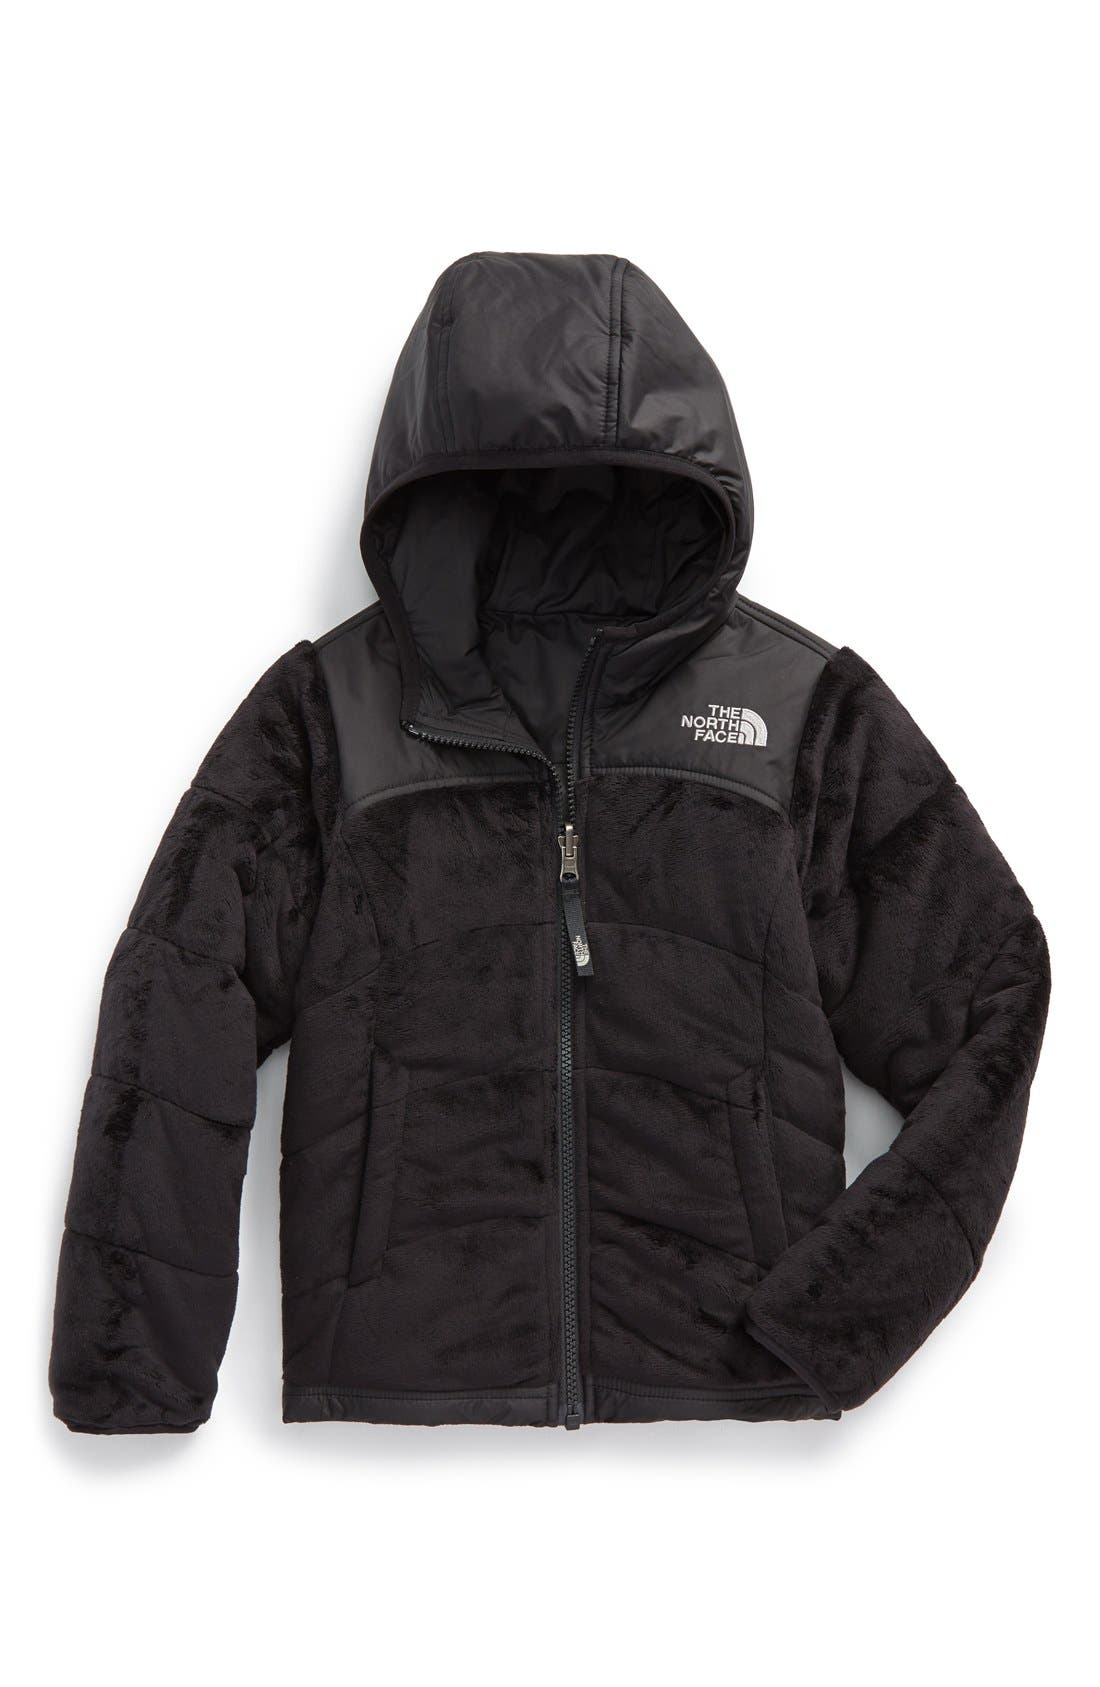 THE NORTH FACE 'Perseus' Water Repellent Heatseeker<sup>™</sup> Insulated Hooded Reversible Jacket, Main, color, 001